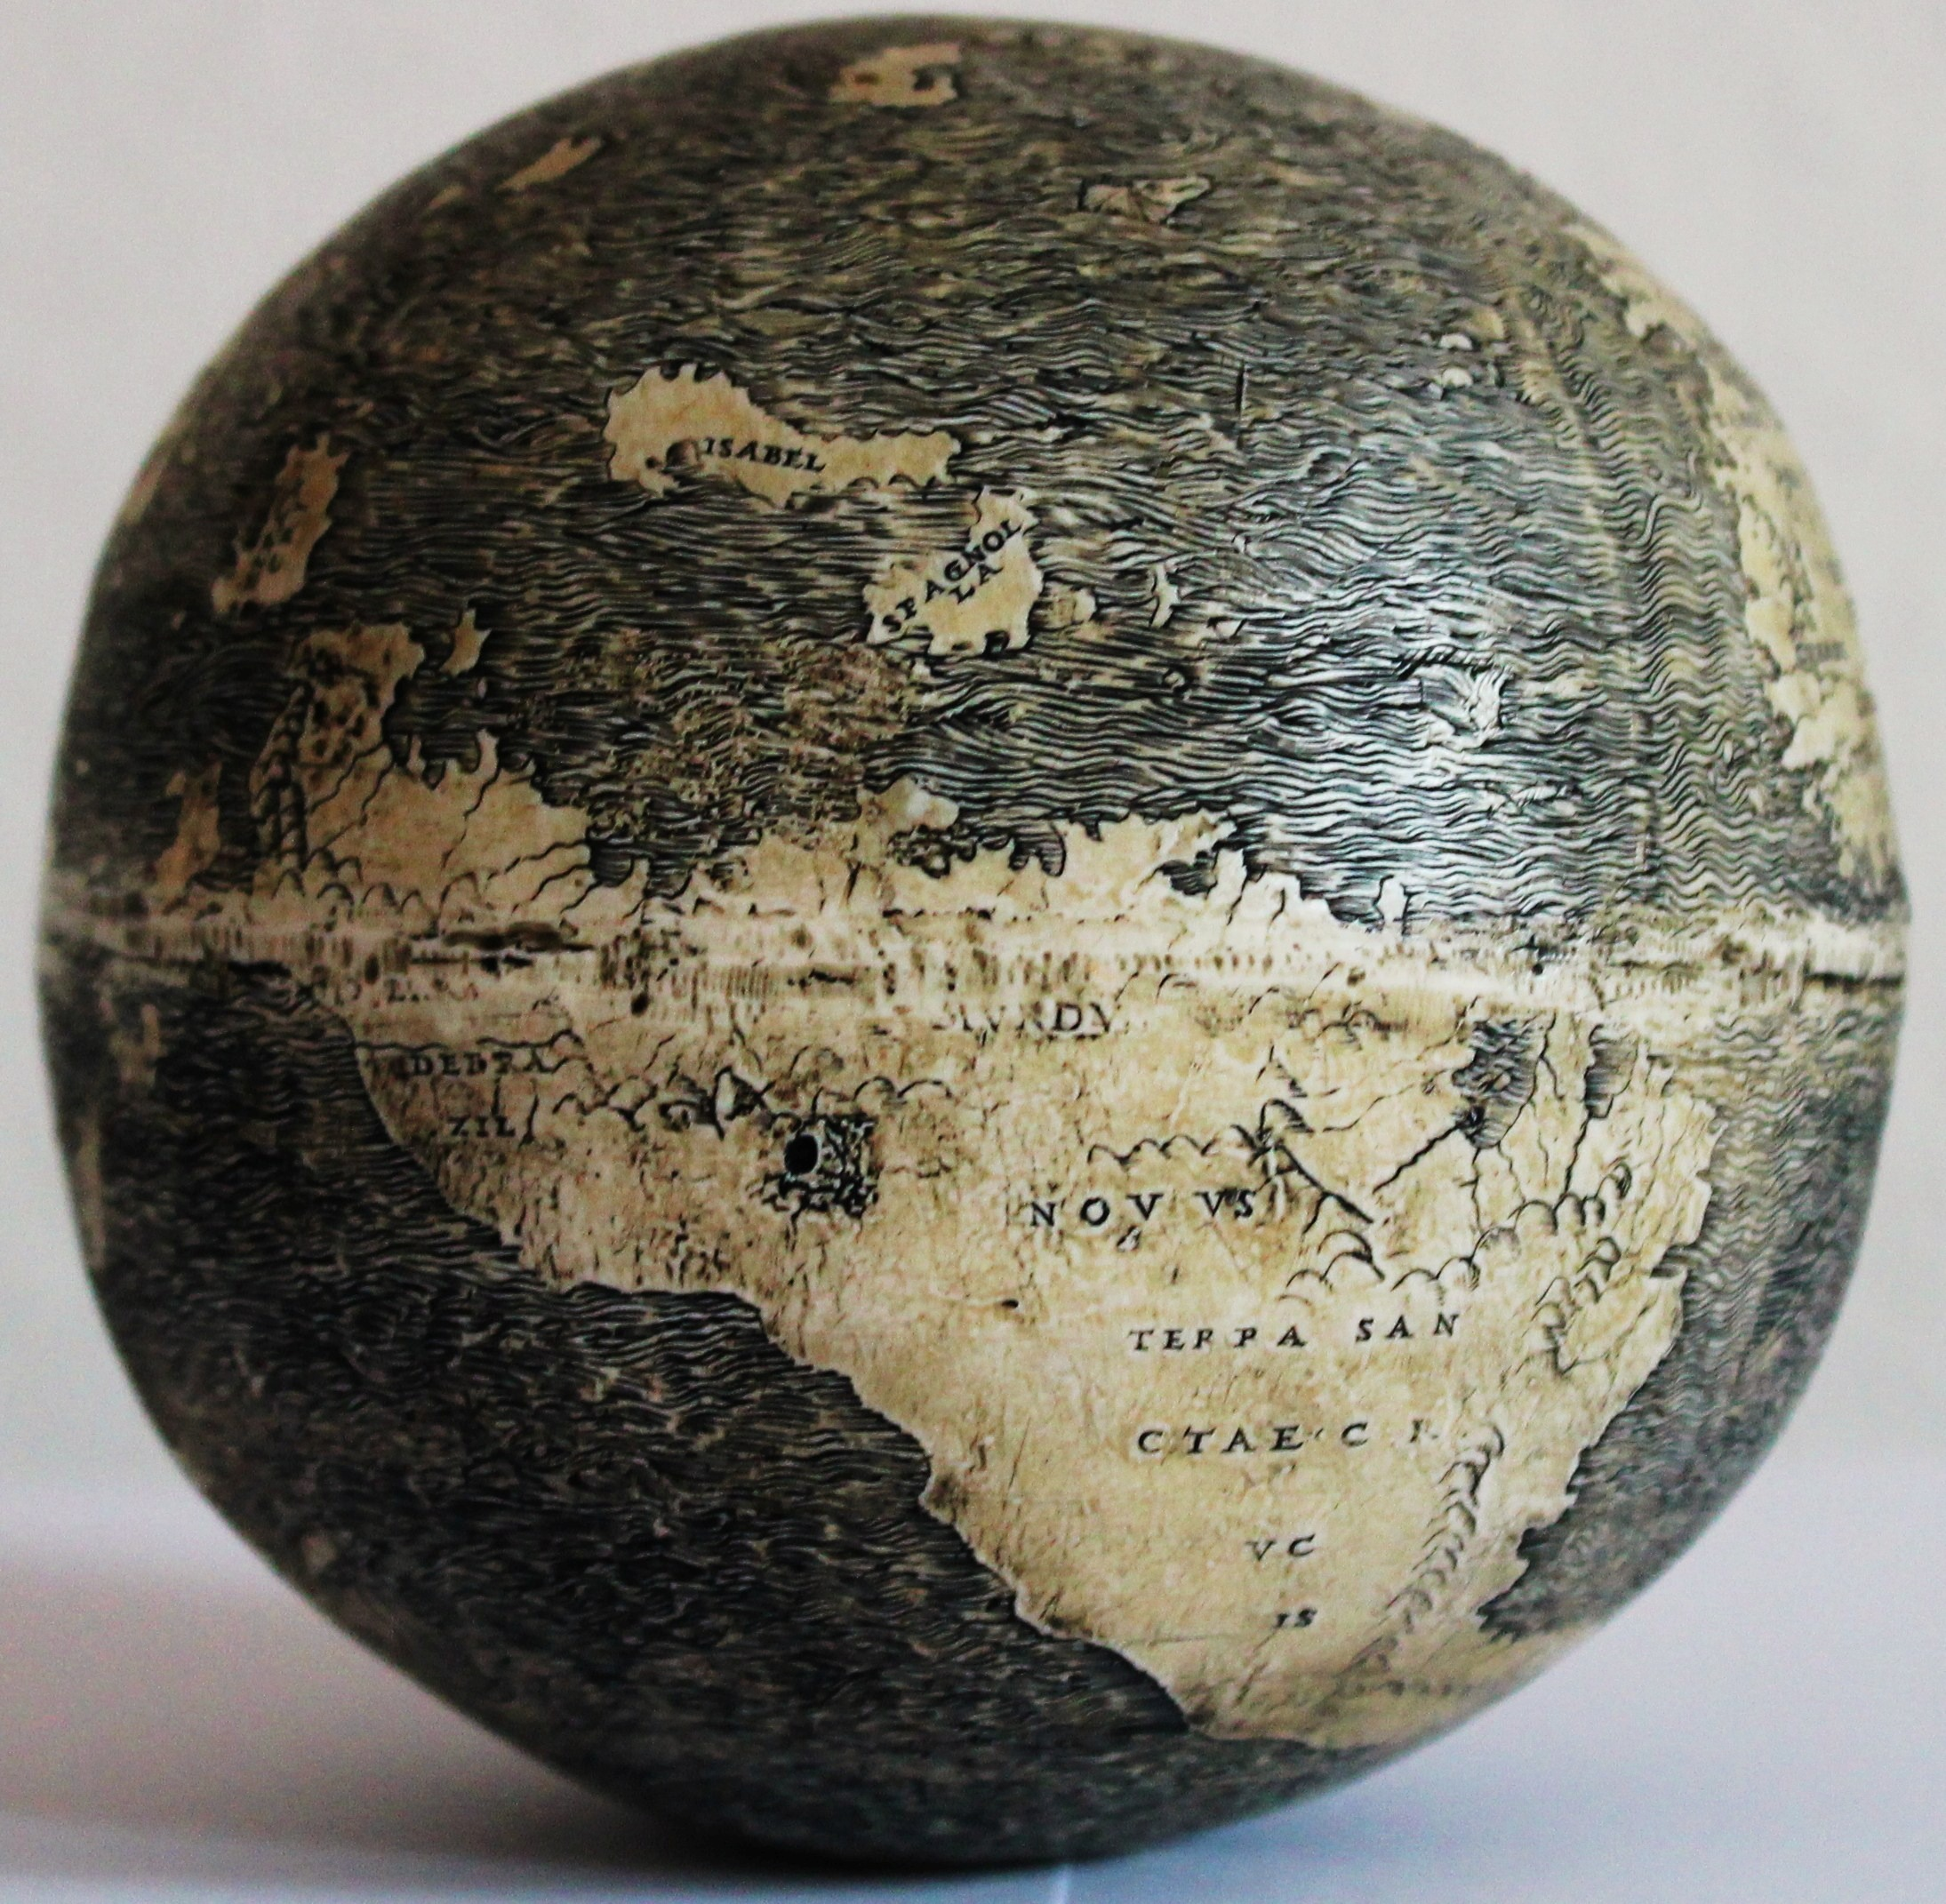 The Oldest Known Globe to Depict the New World Was Engraved on an Ostrich Egg, Maybe by Leondardo da Vinci (1504)